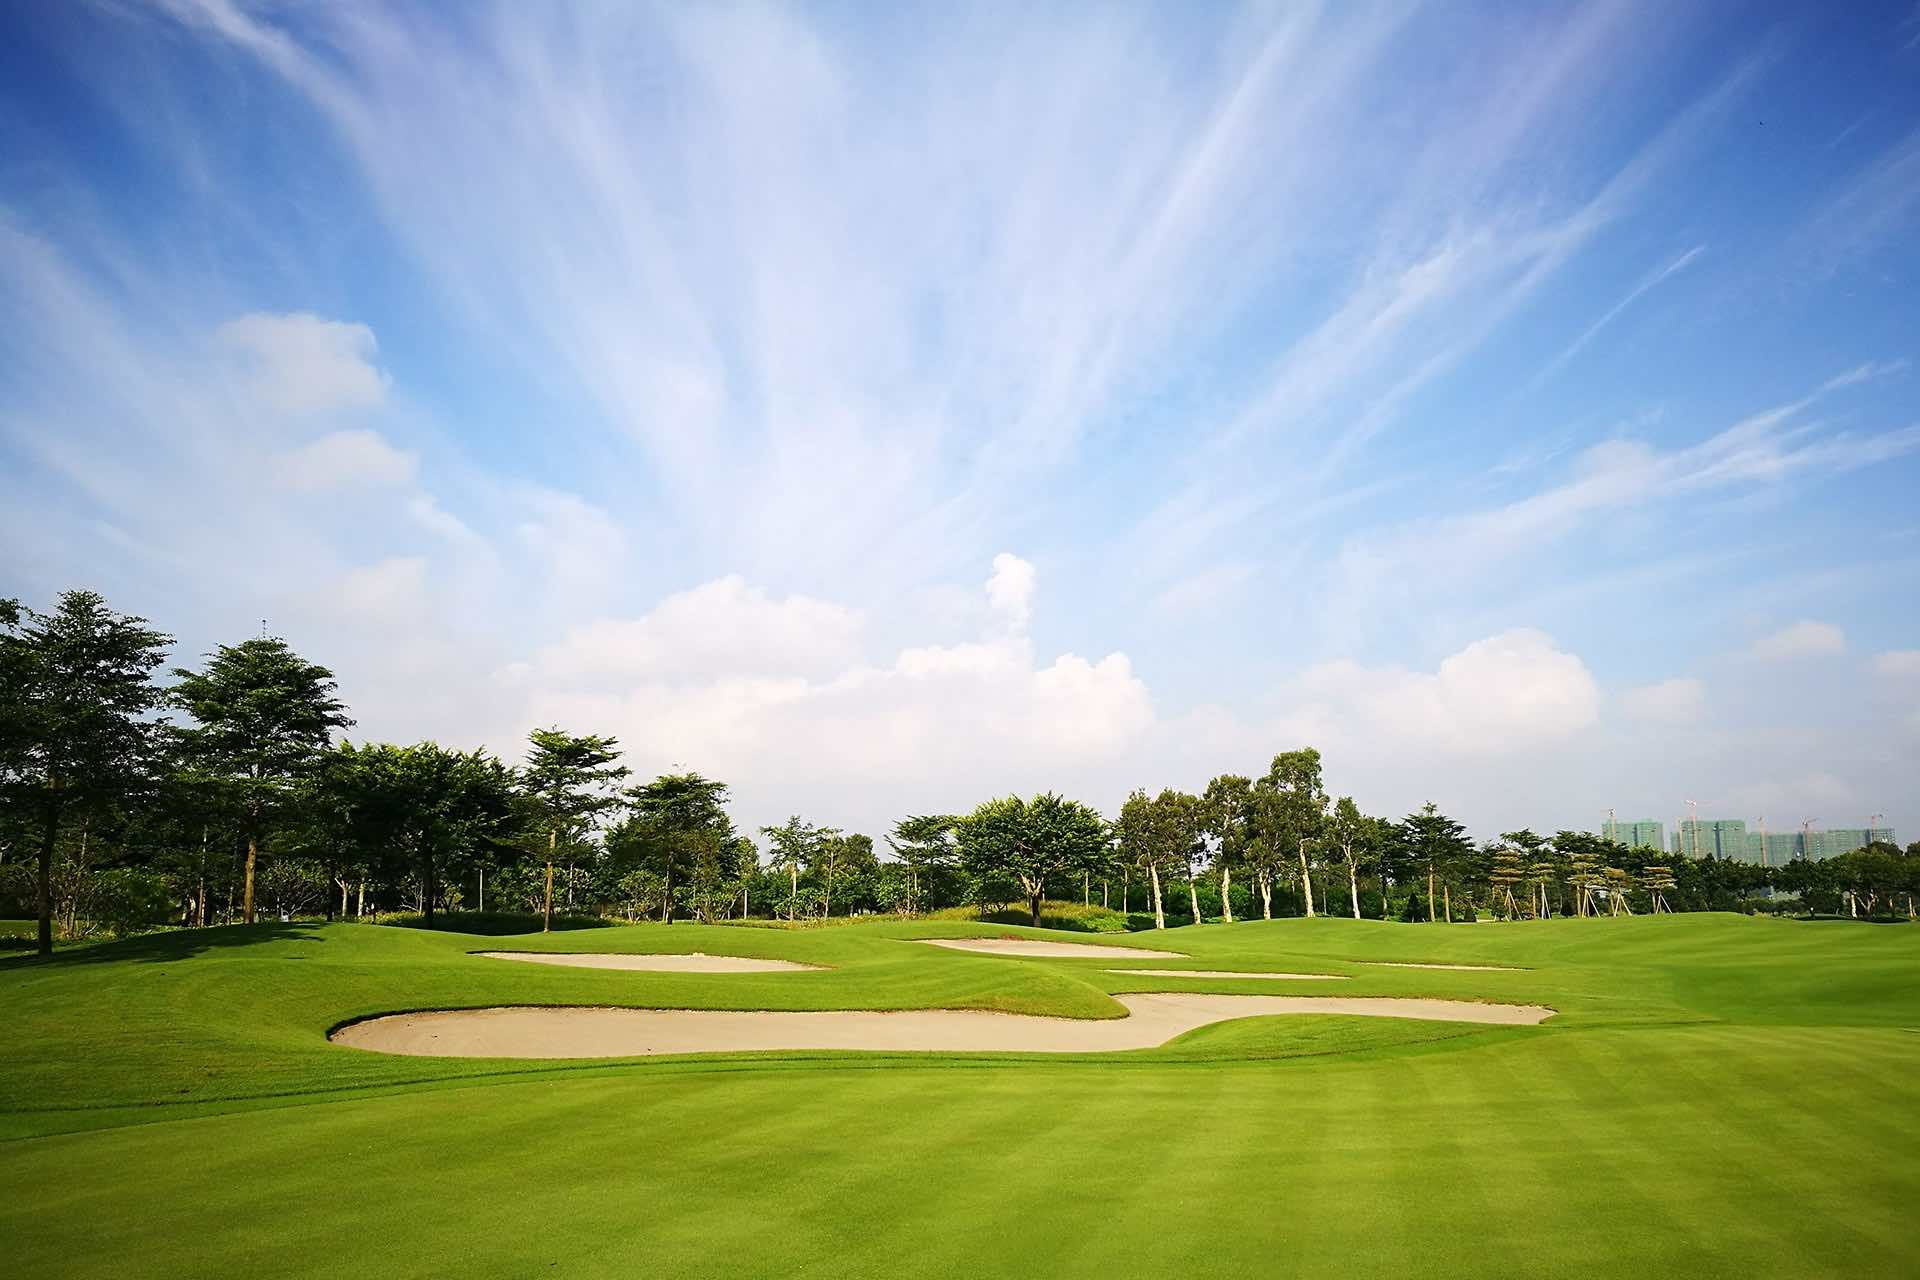 Zhuhai Golden Gulf Golf Club, the first stop to build a ranking on the Junior Order of merit